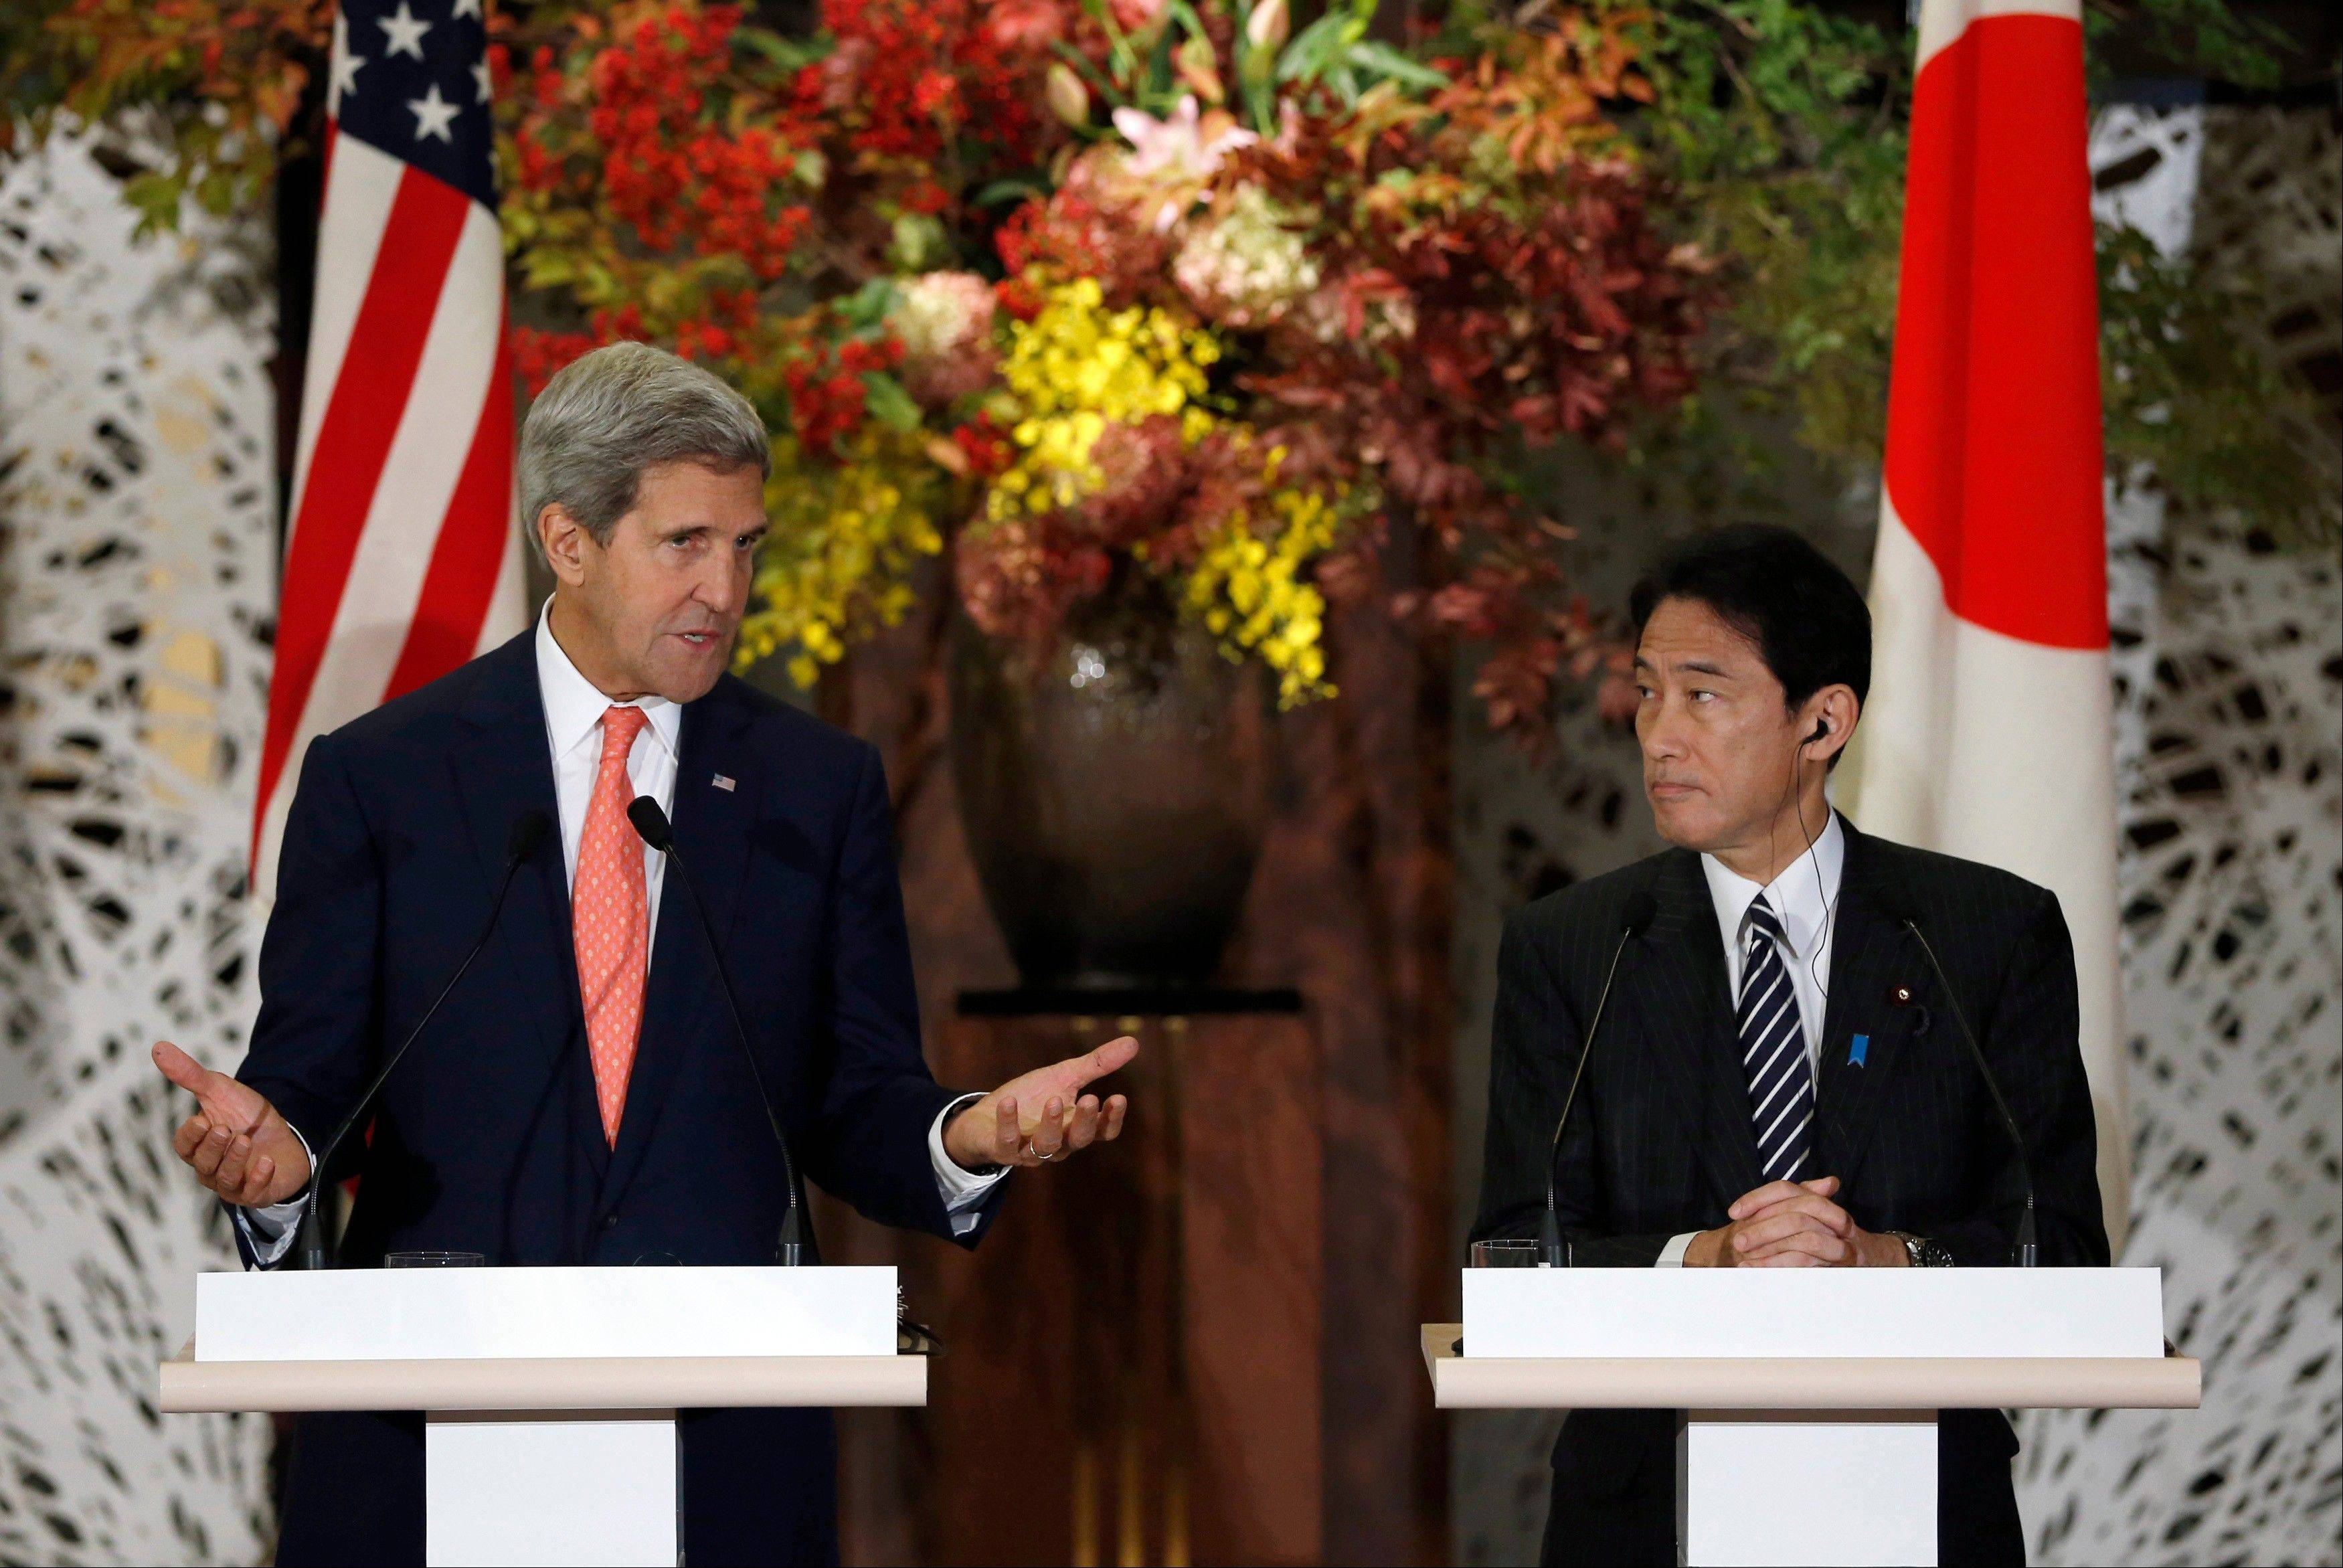 U.S. Secretary of State John Kerry, left, and Japan's Foreign Minister Fumio Kishida, right, attend their joint news conference with U.S. Secretary of Defense Chuck Hagel and Japan's Defense Minister Itsunori Onodera after the Japan-U.S. security talks in Tokyo Thursday, Oct. 3, 2013.